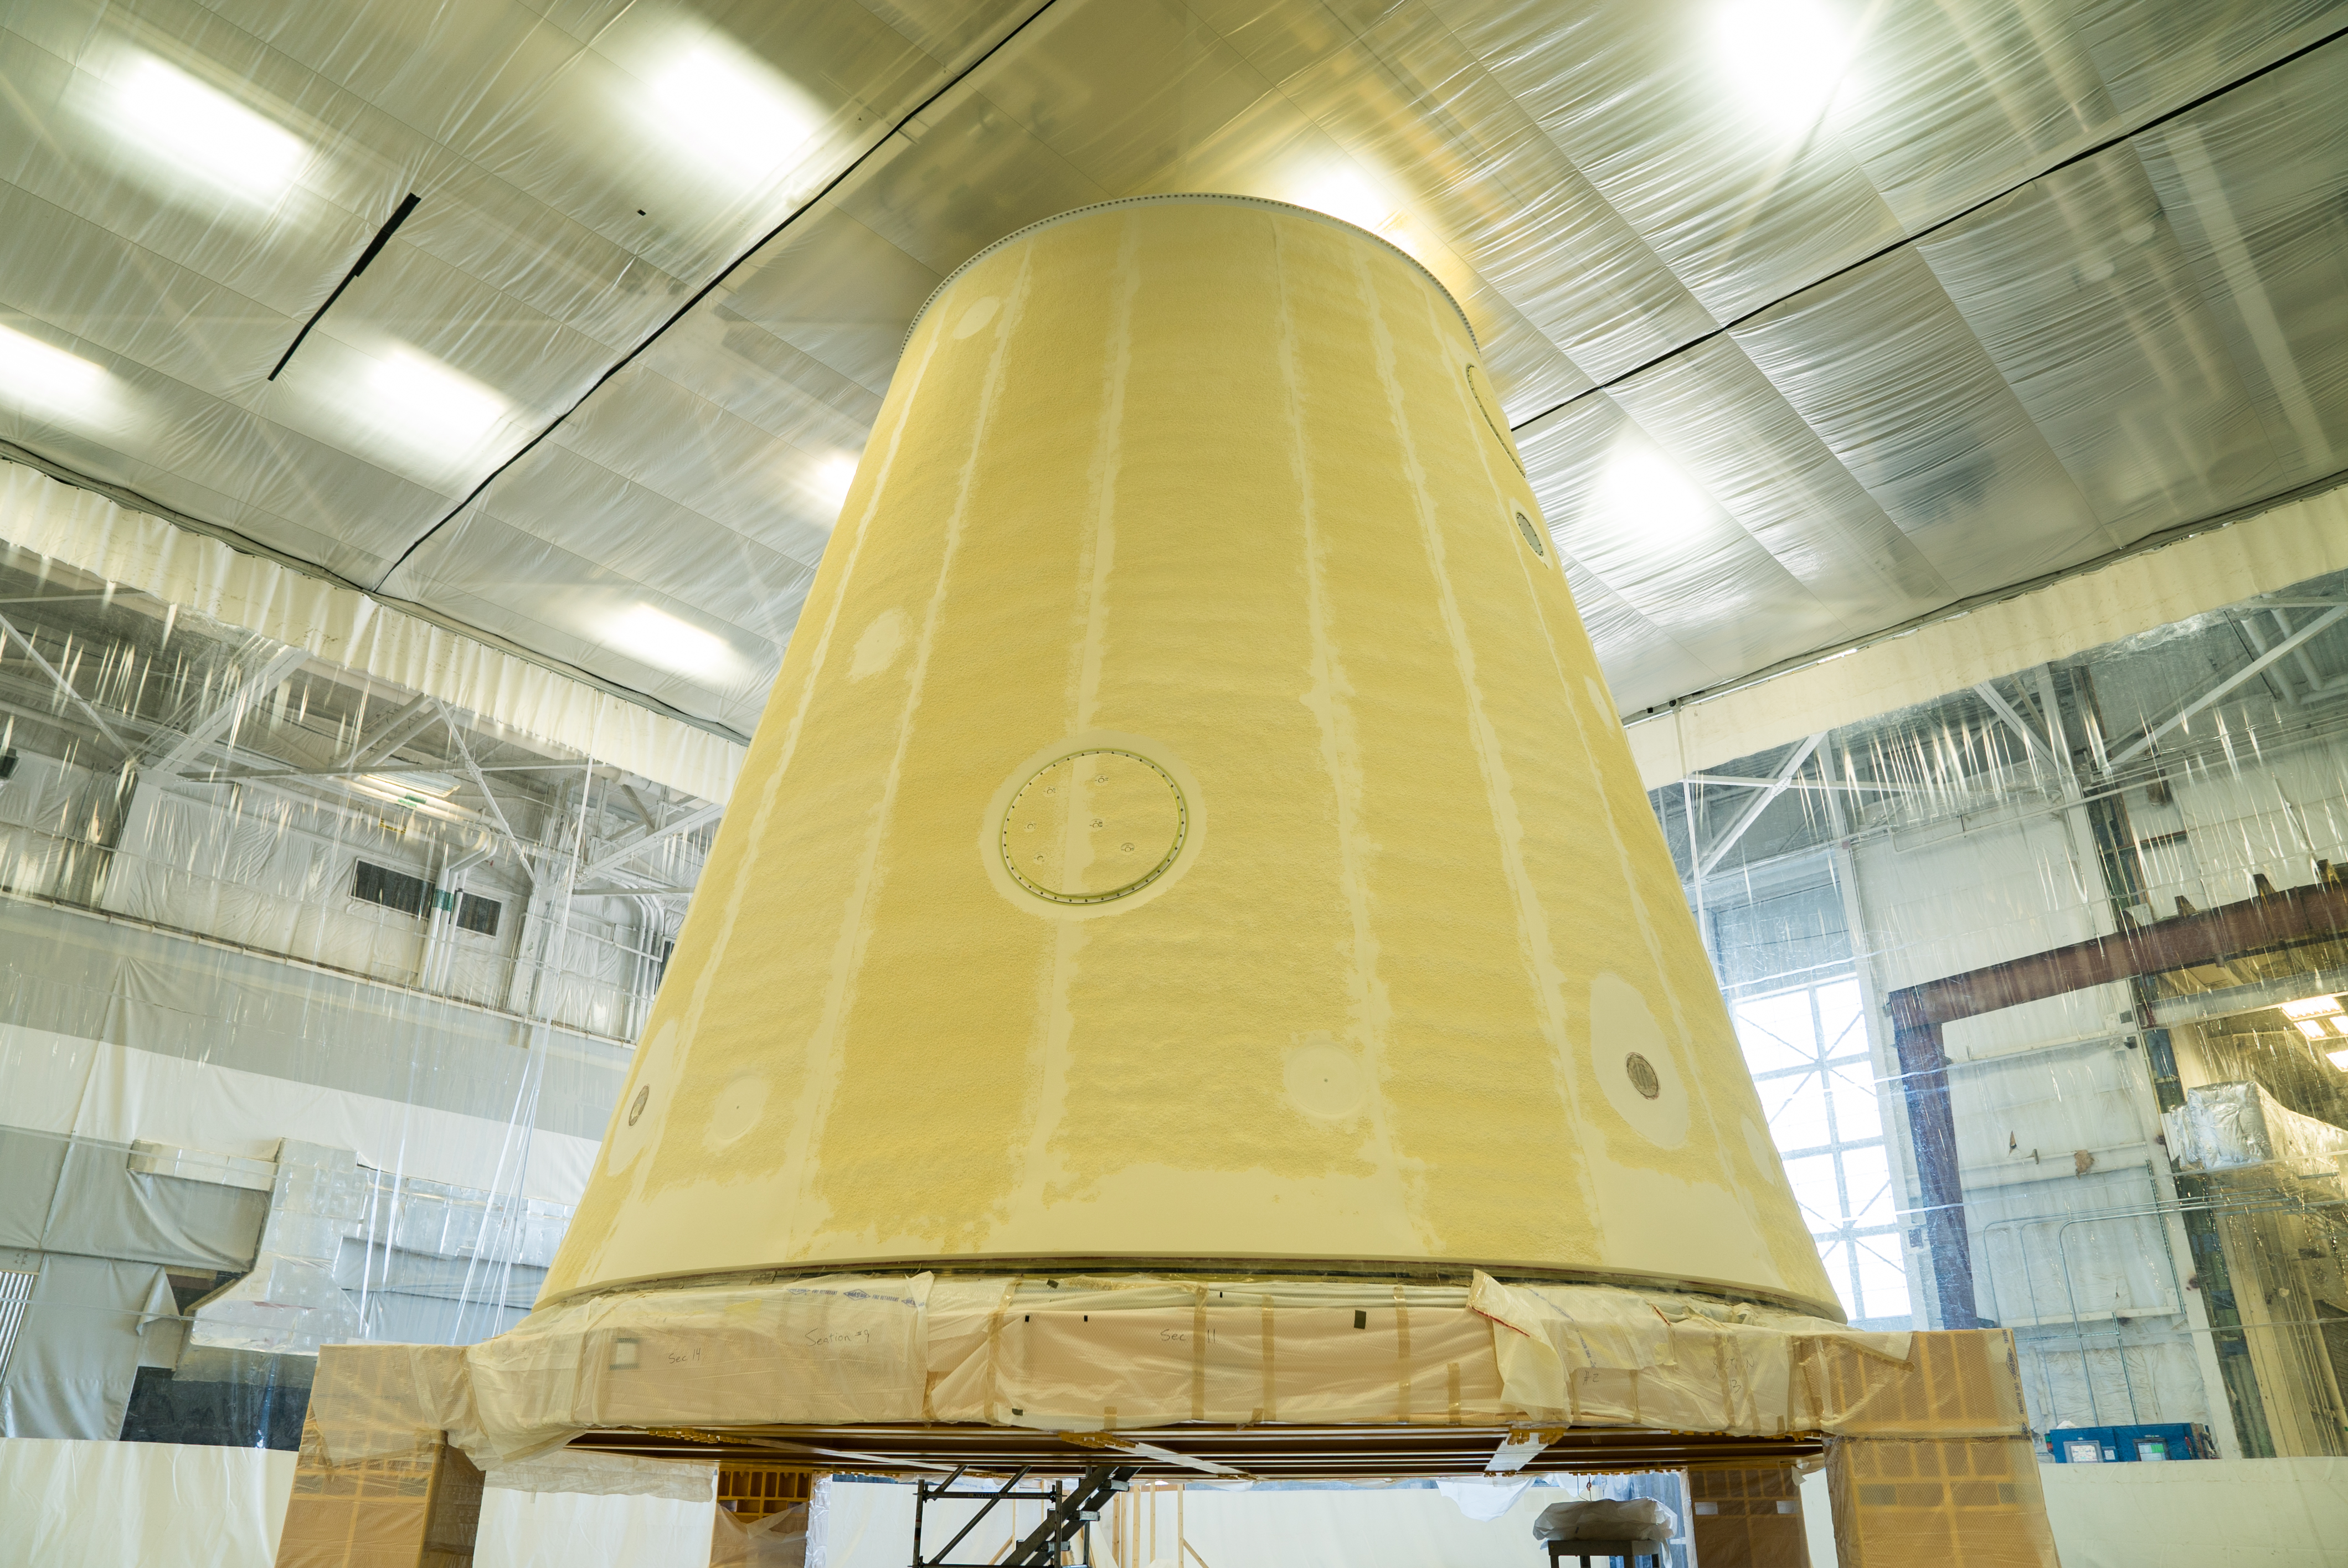 mfsc_050218_sls_lvsa_tps_complete 5 foam and cork insulation protects deep space rocket from fire and